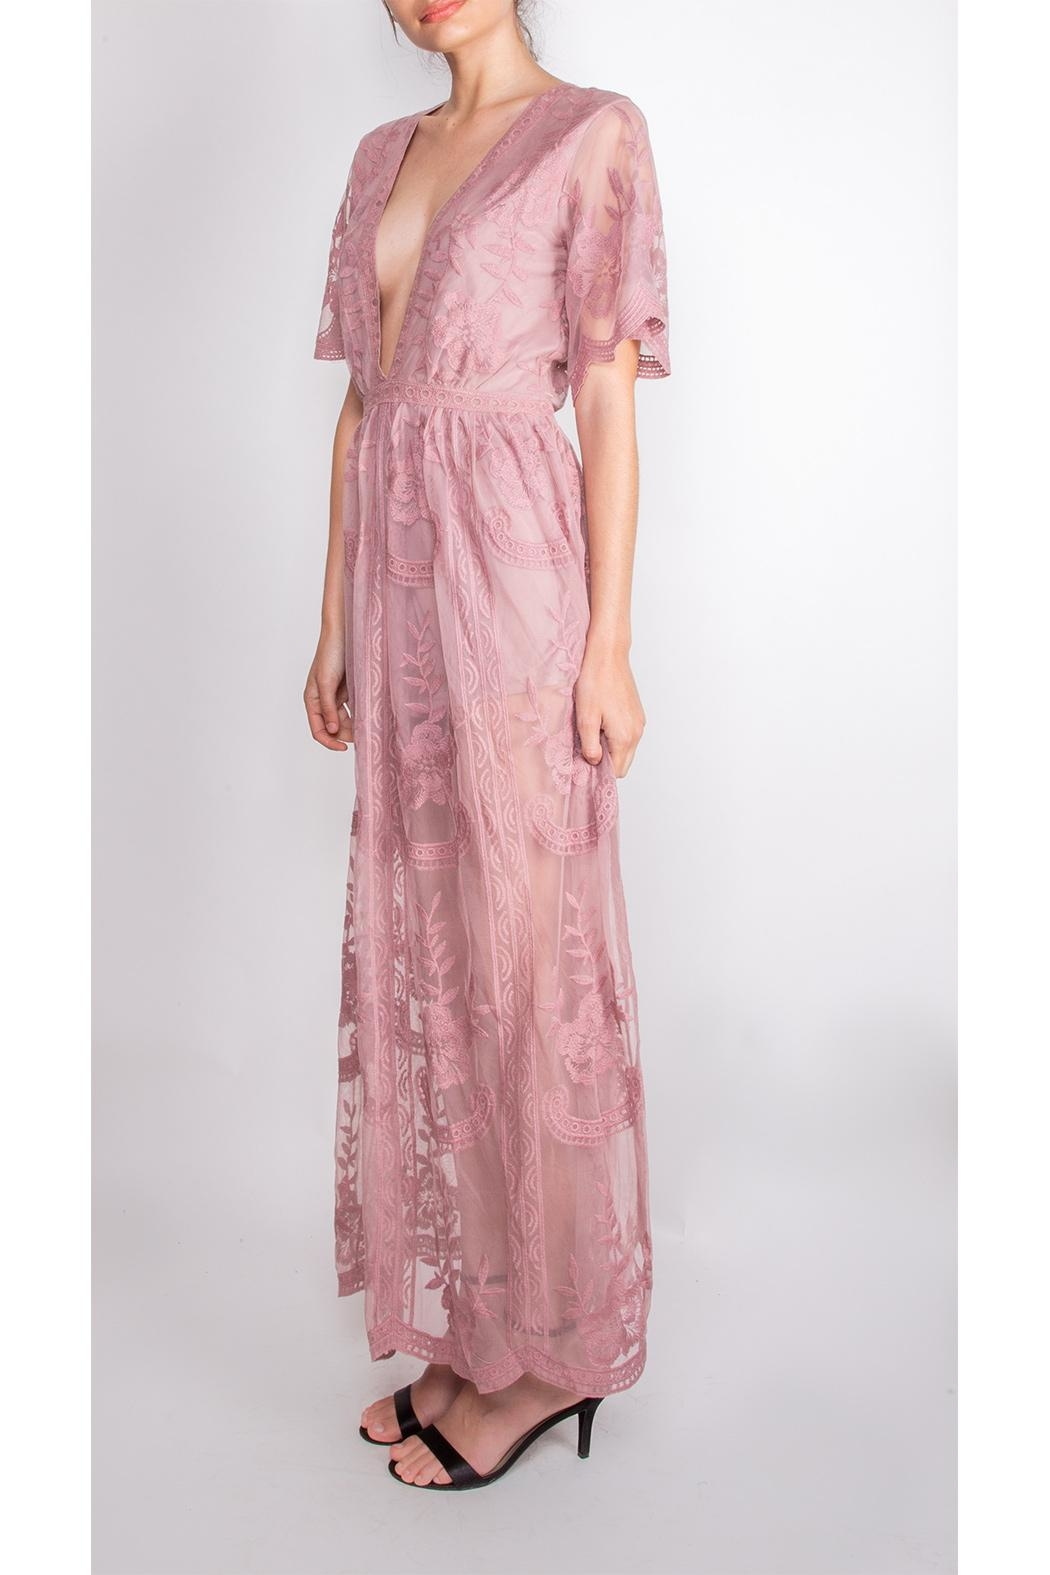 Wild Honey Butterfly Lace Maxi-Dress - Front Full Image